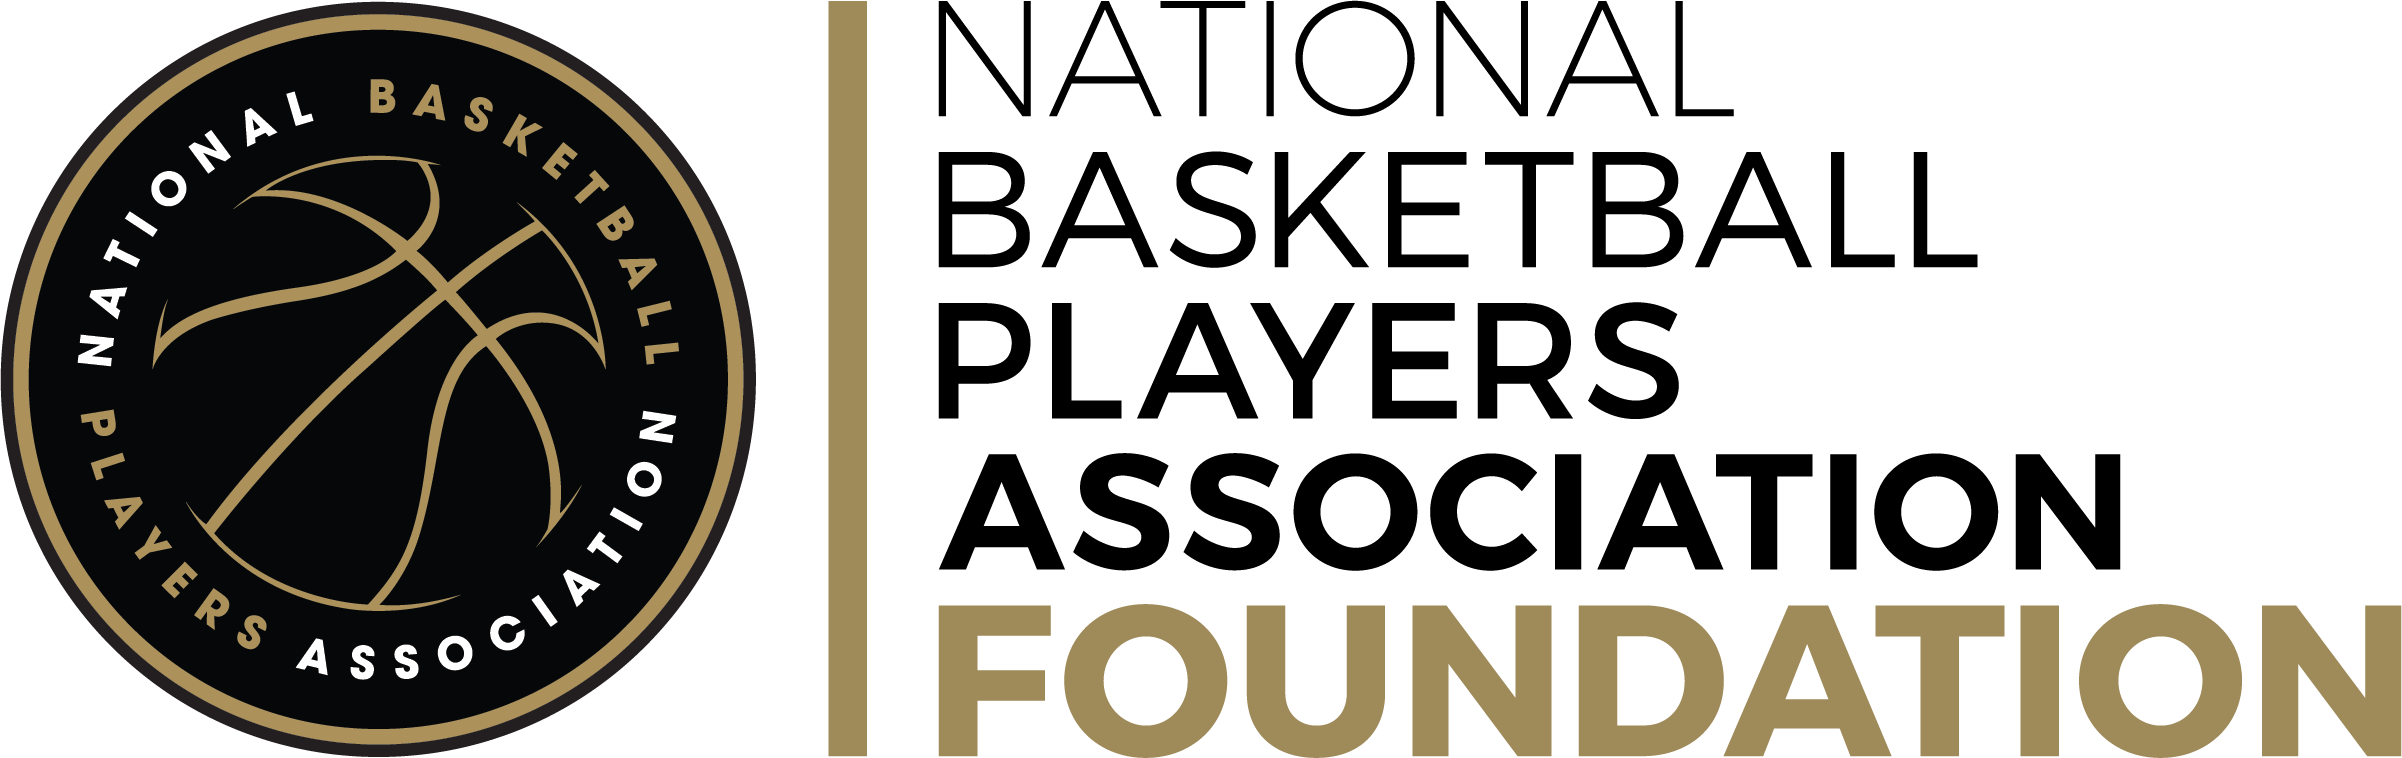 NBPA Foundation Logo